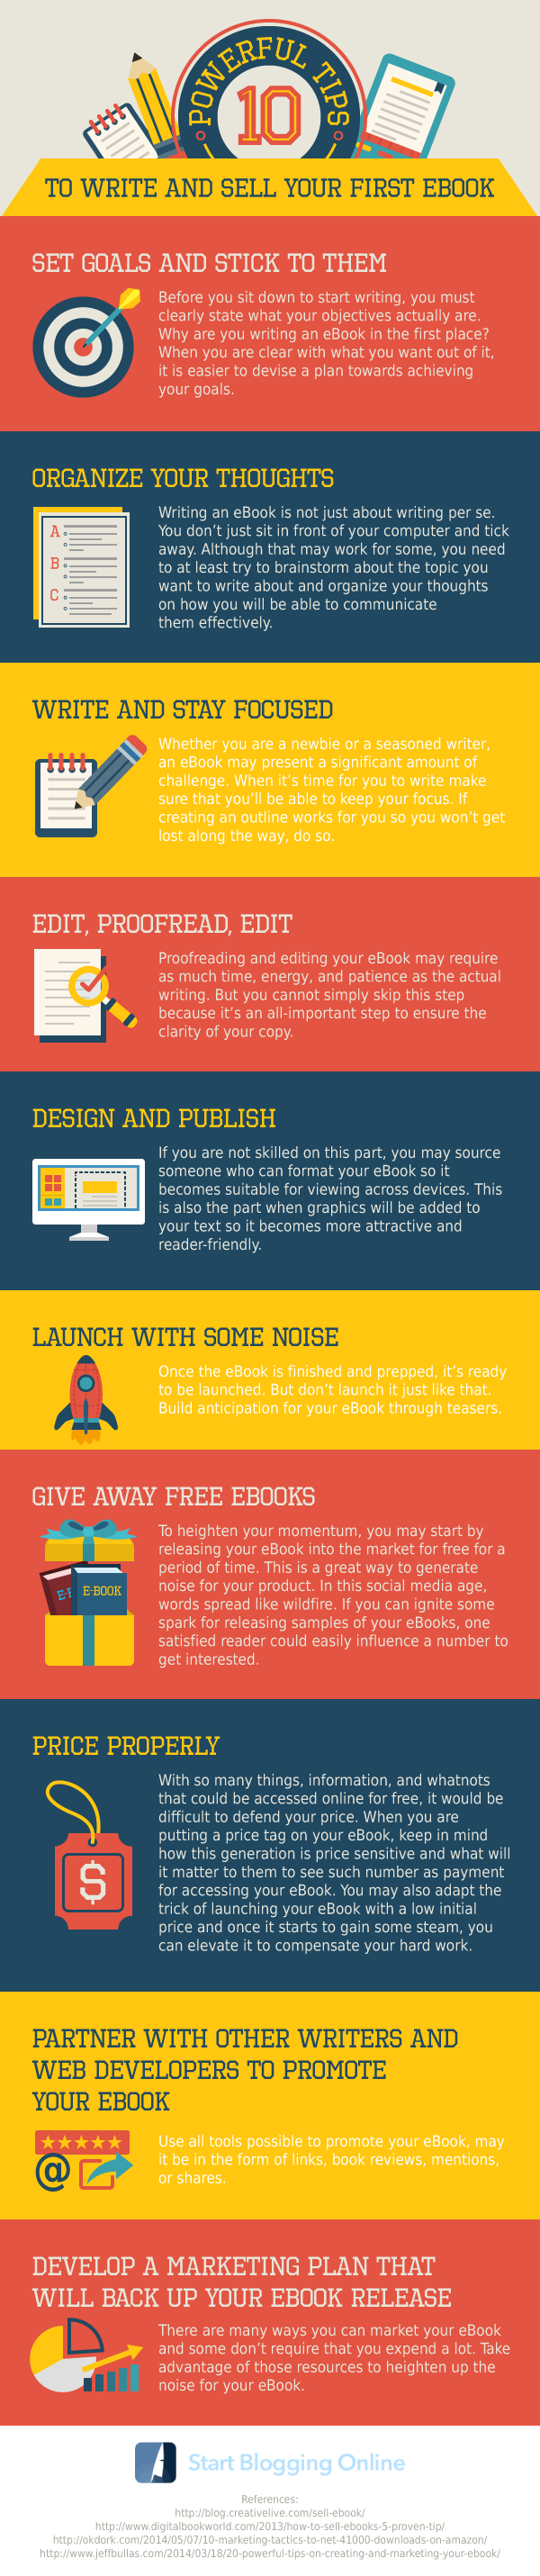 Great infographic mapping out how you can successfully write and sell your first eBook